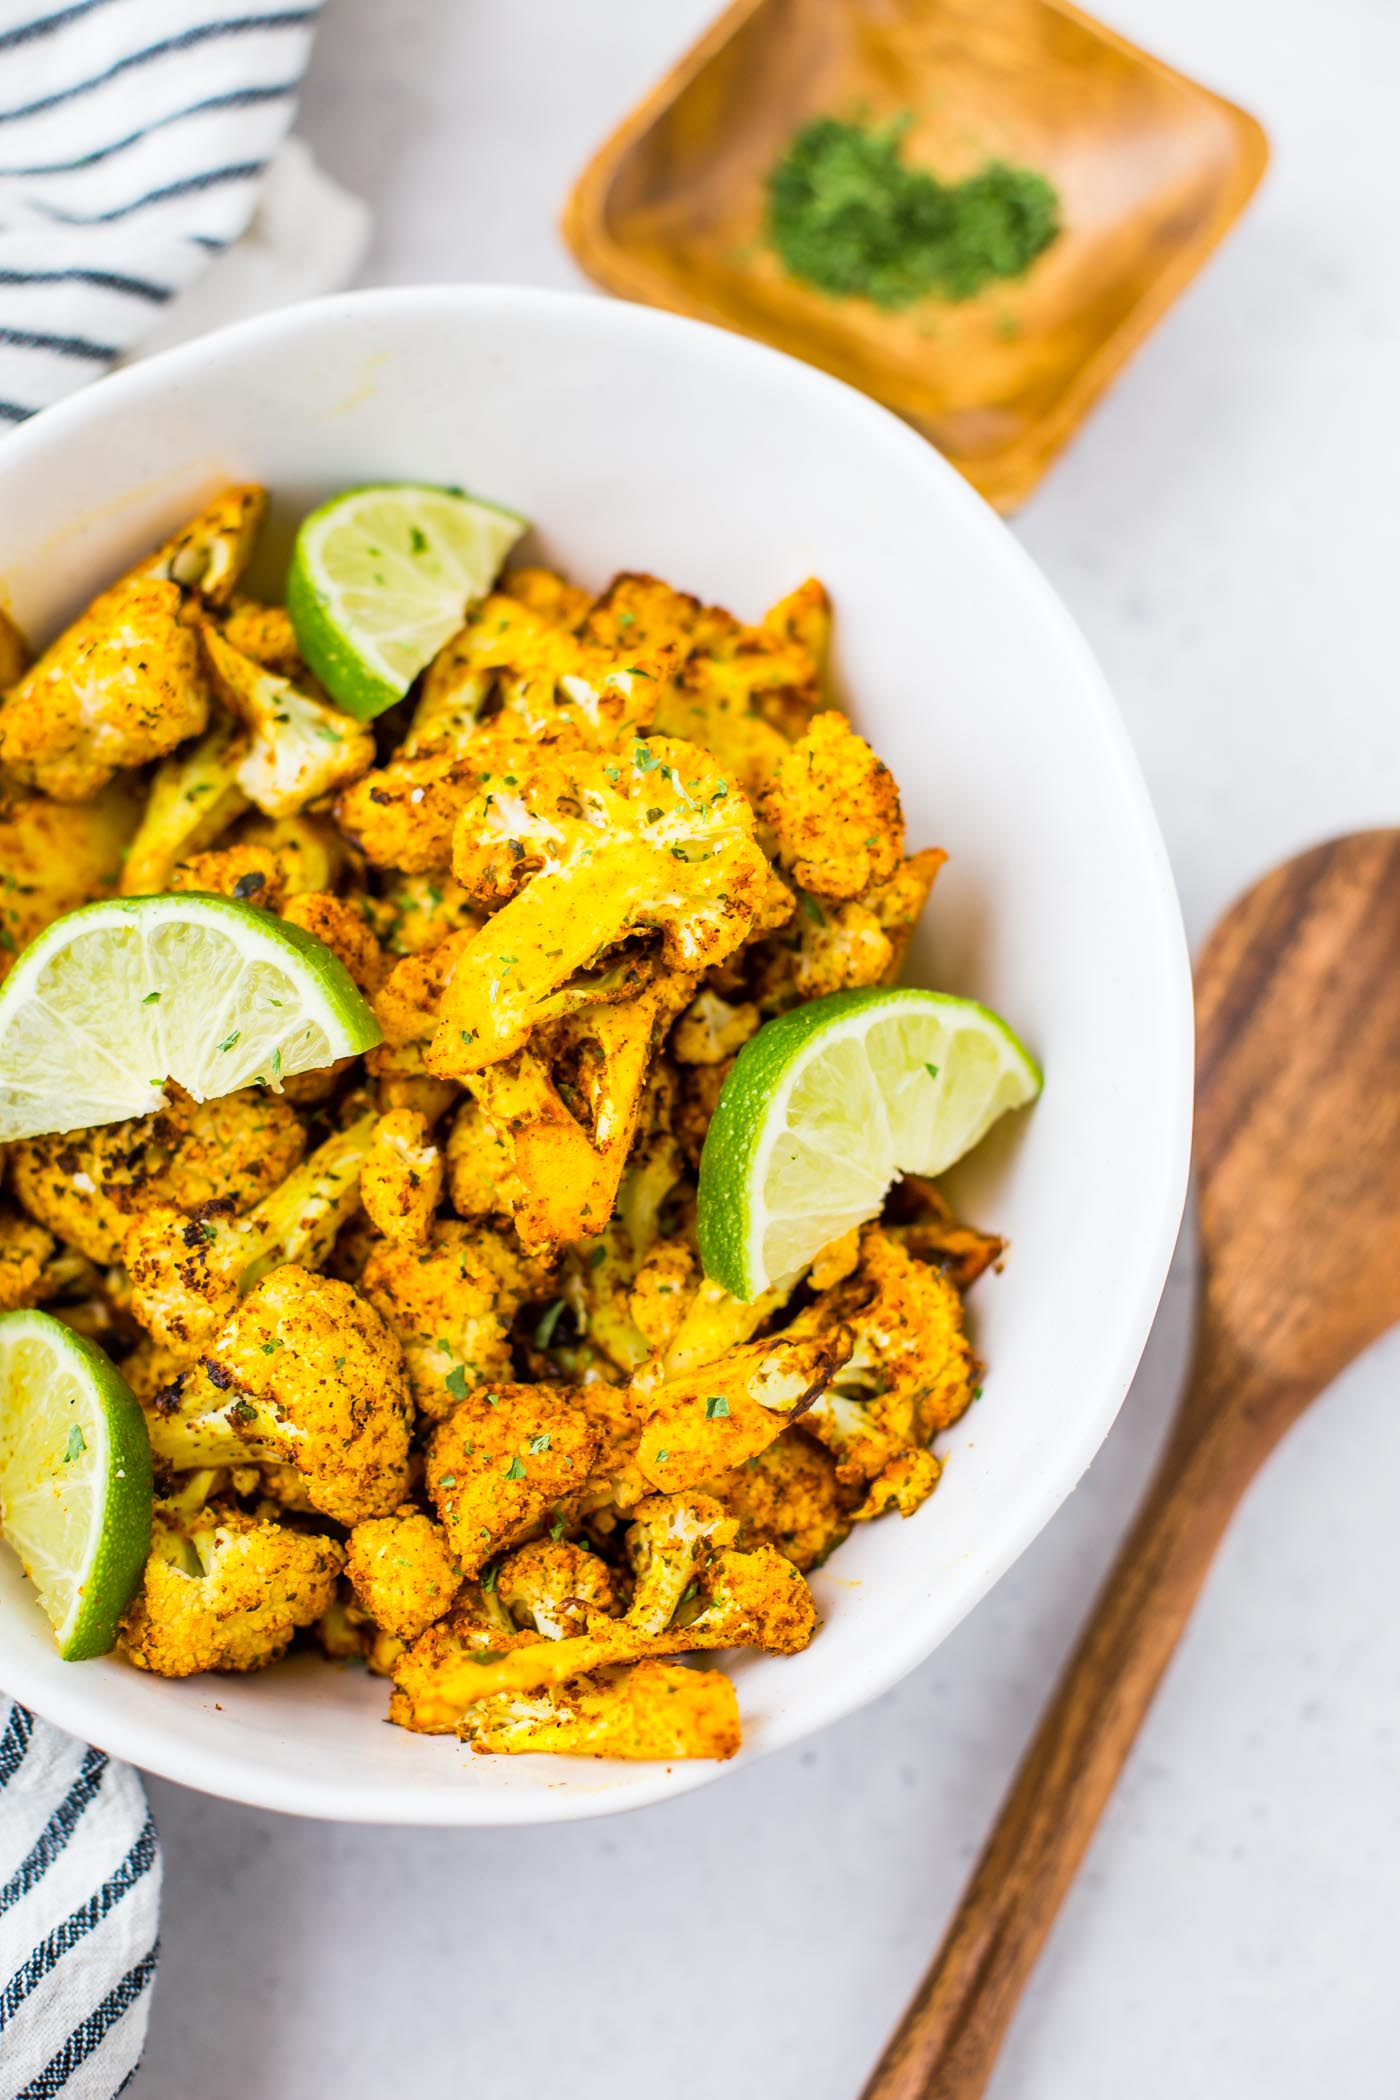 Mexican Cauliflower air fryer in white bowl topped with sliced limes